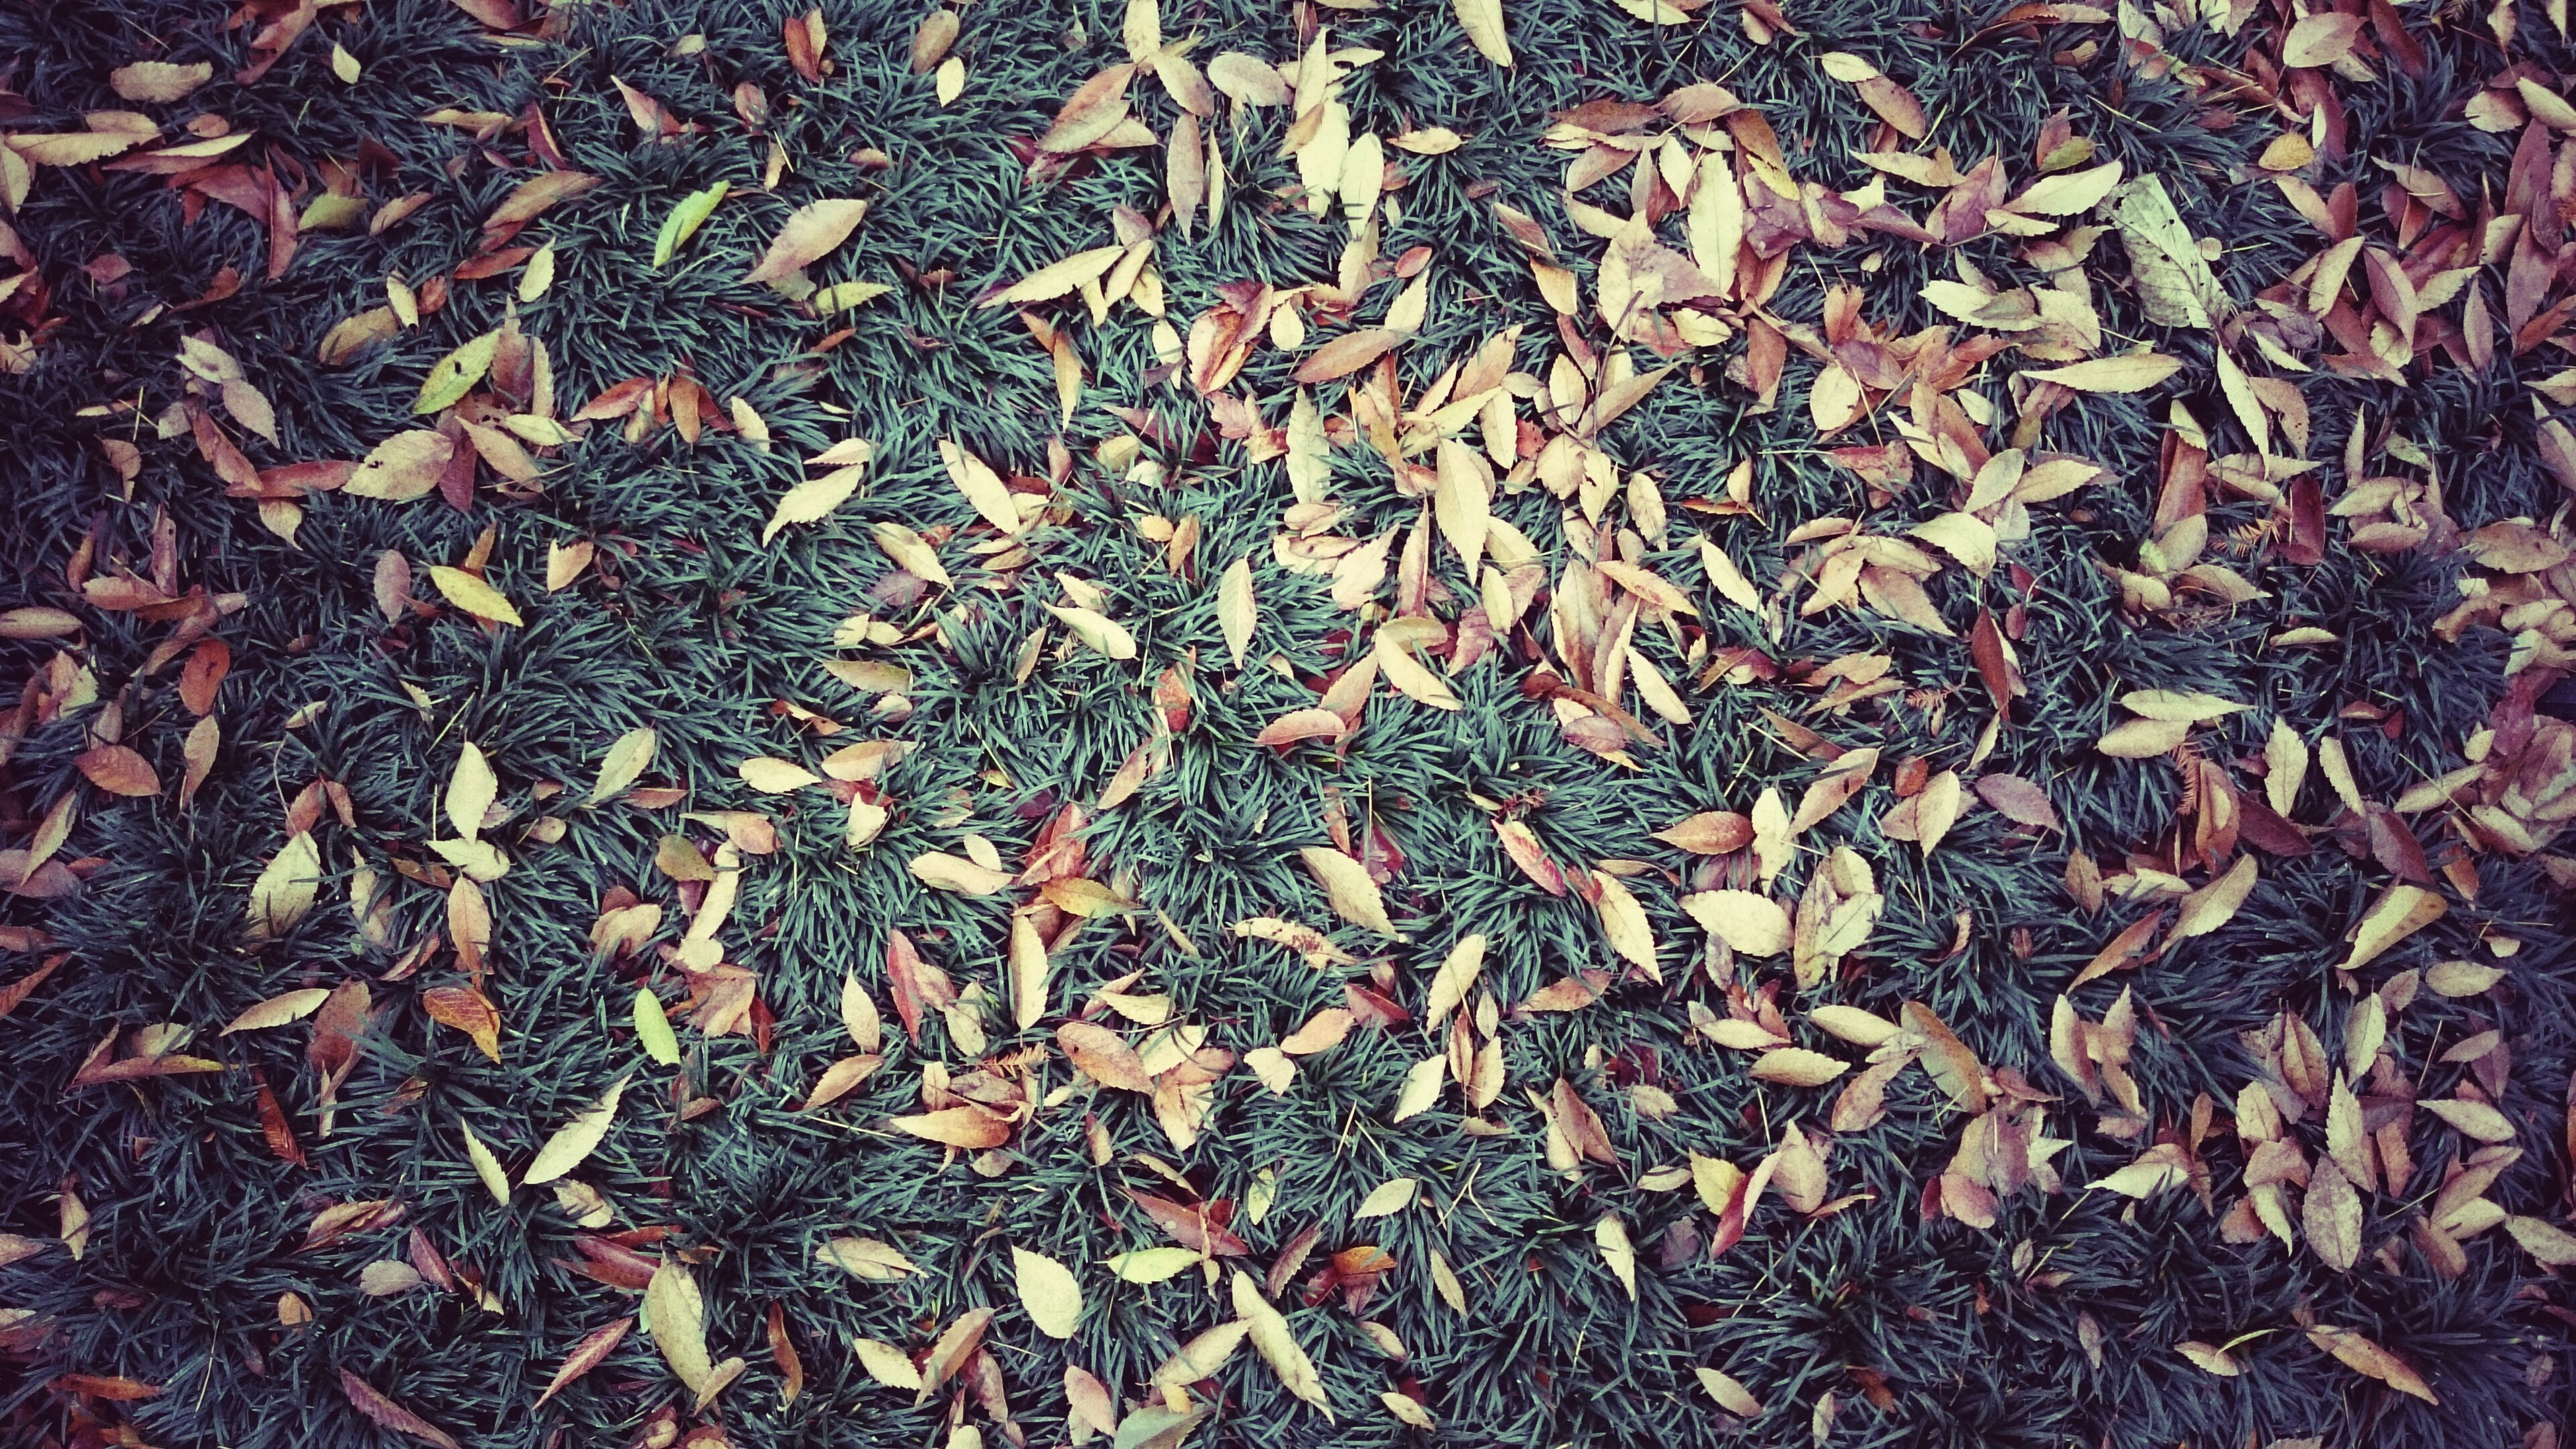 full frame, backgrounds, high angle view, abundance, leaf, dry, textured, field, nature, autumn, day, pattern, outdoors, change, no people, natural pattern, leaves, ground, fallen, close-up